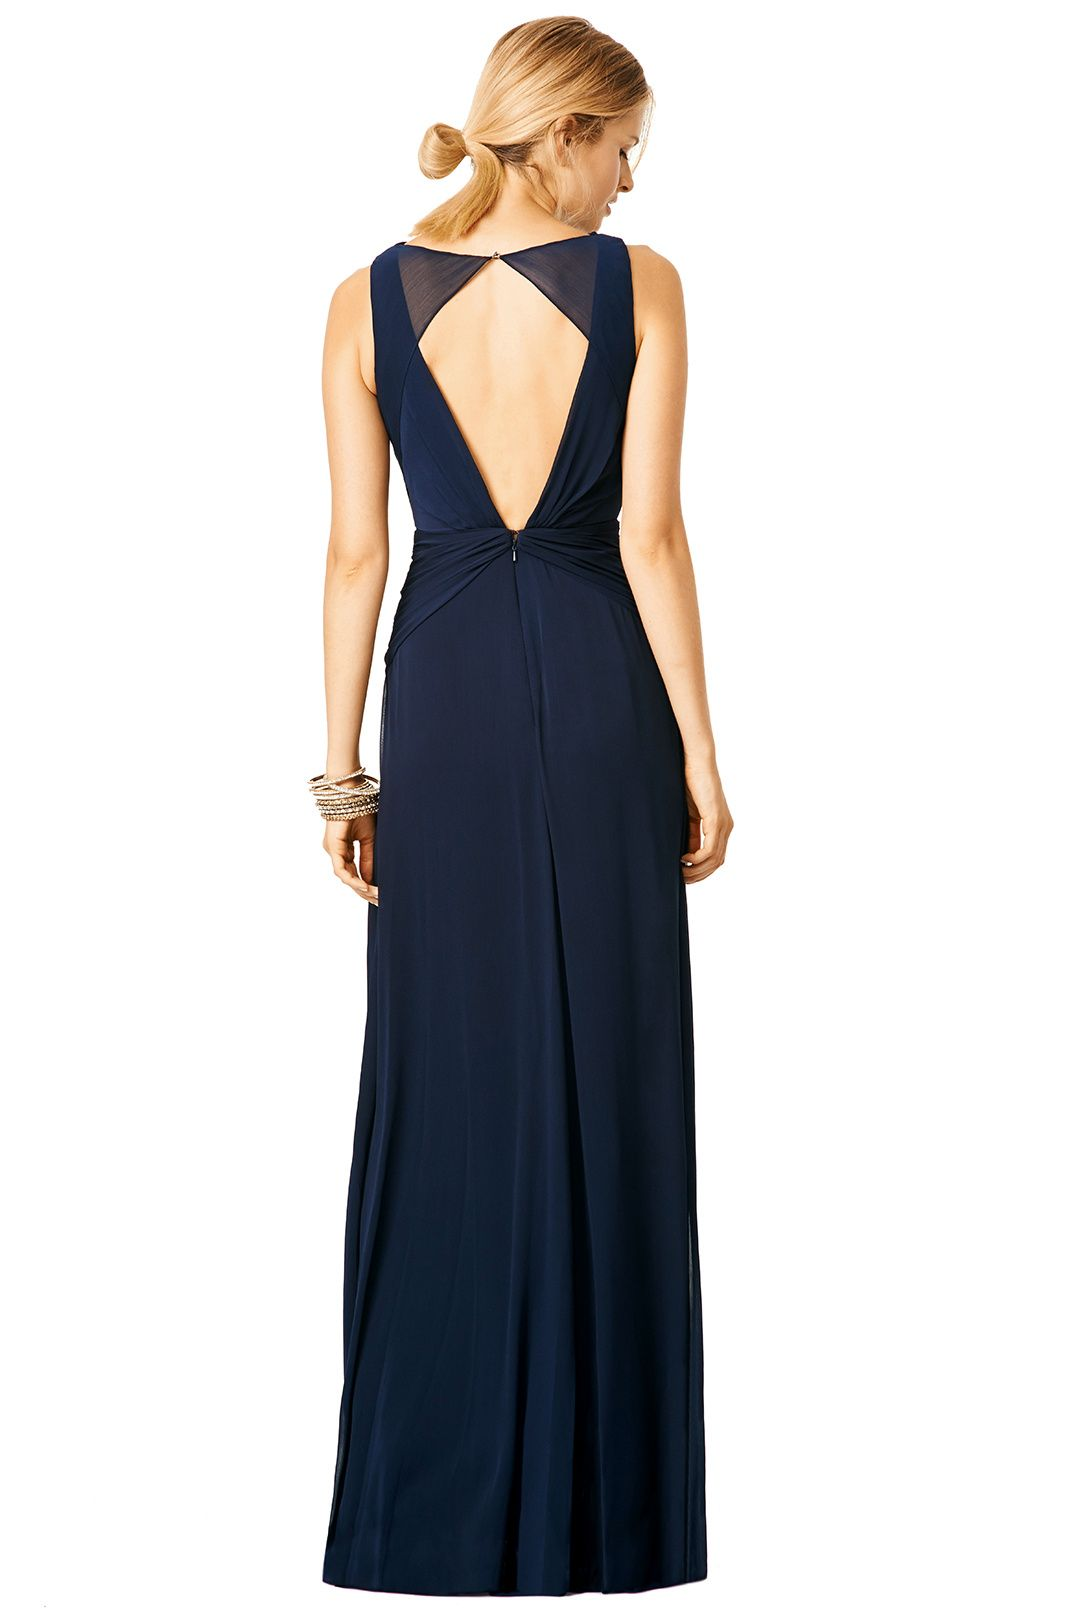 Floor length navy gown with key hole and open back // Navy Petunia ...